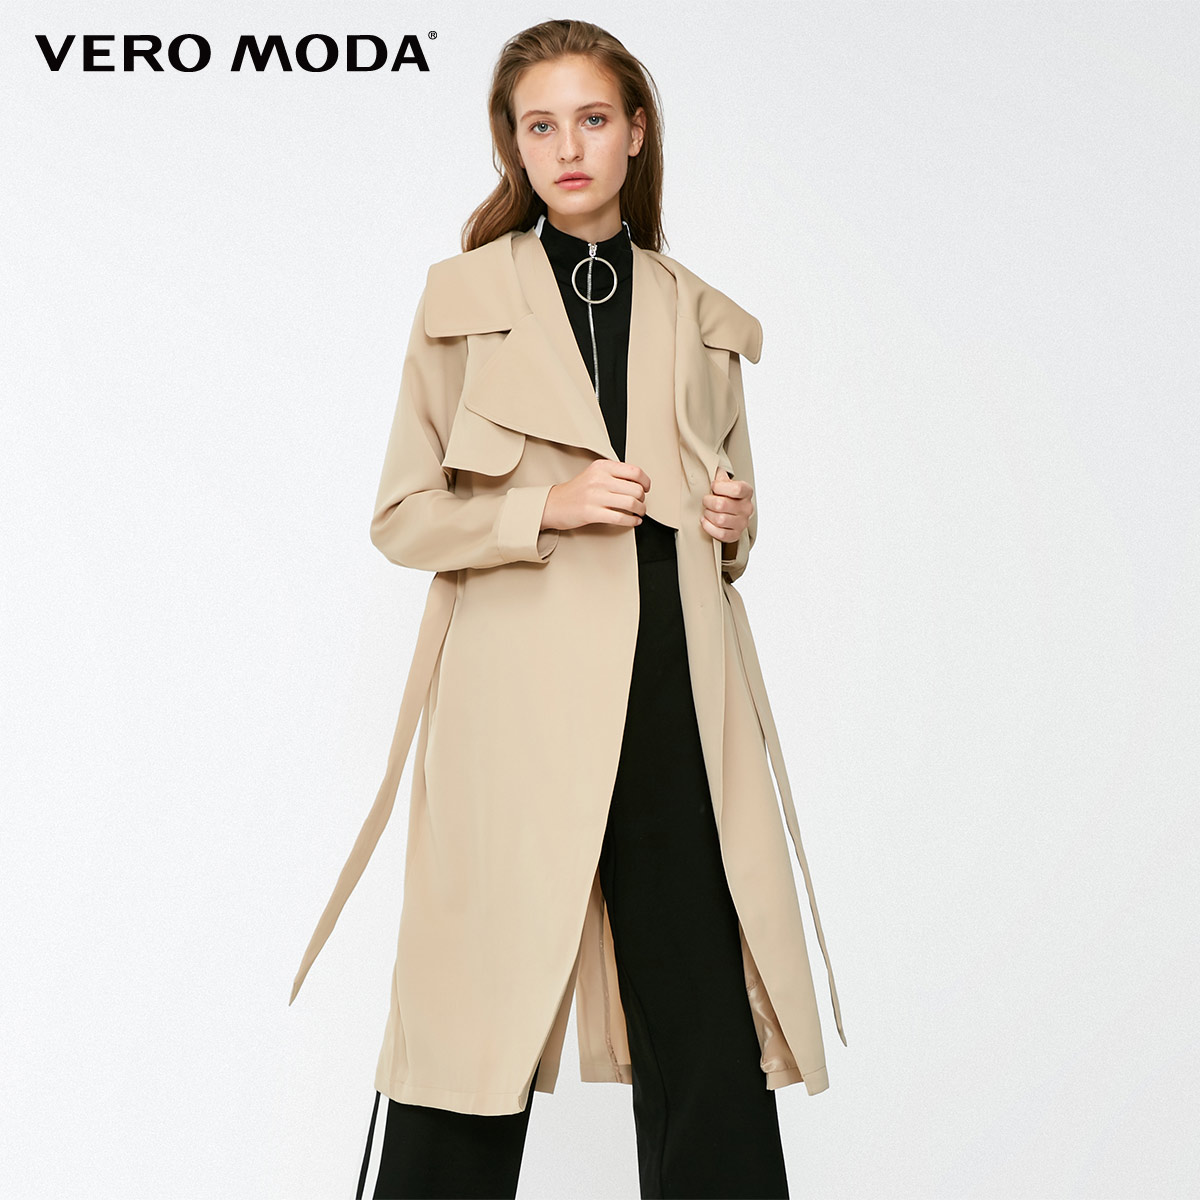 Vero Moda 2019 New Women's OL Style Two-tiered Lapel Lace-up Minimalist Wind Coat   Trench   Coat | 318421502